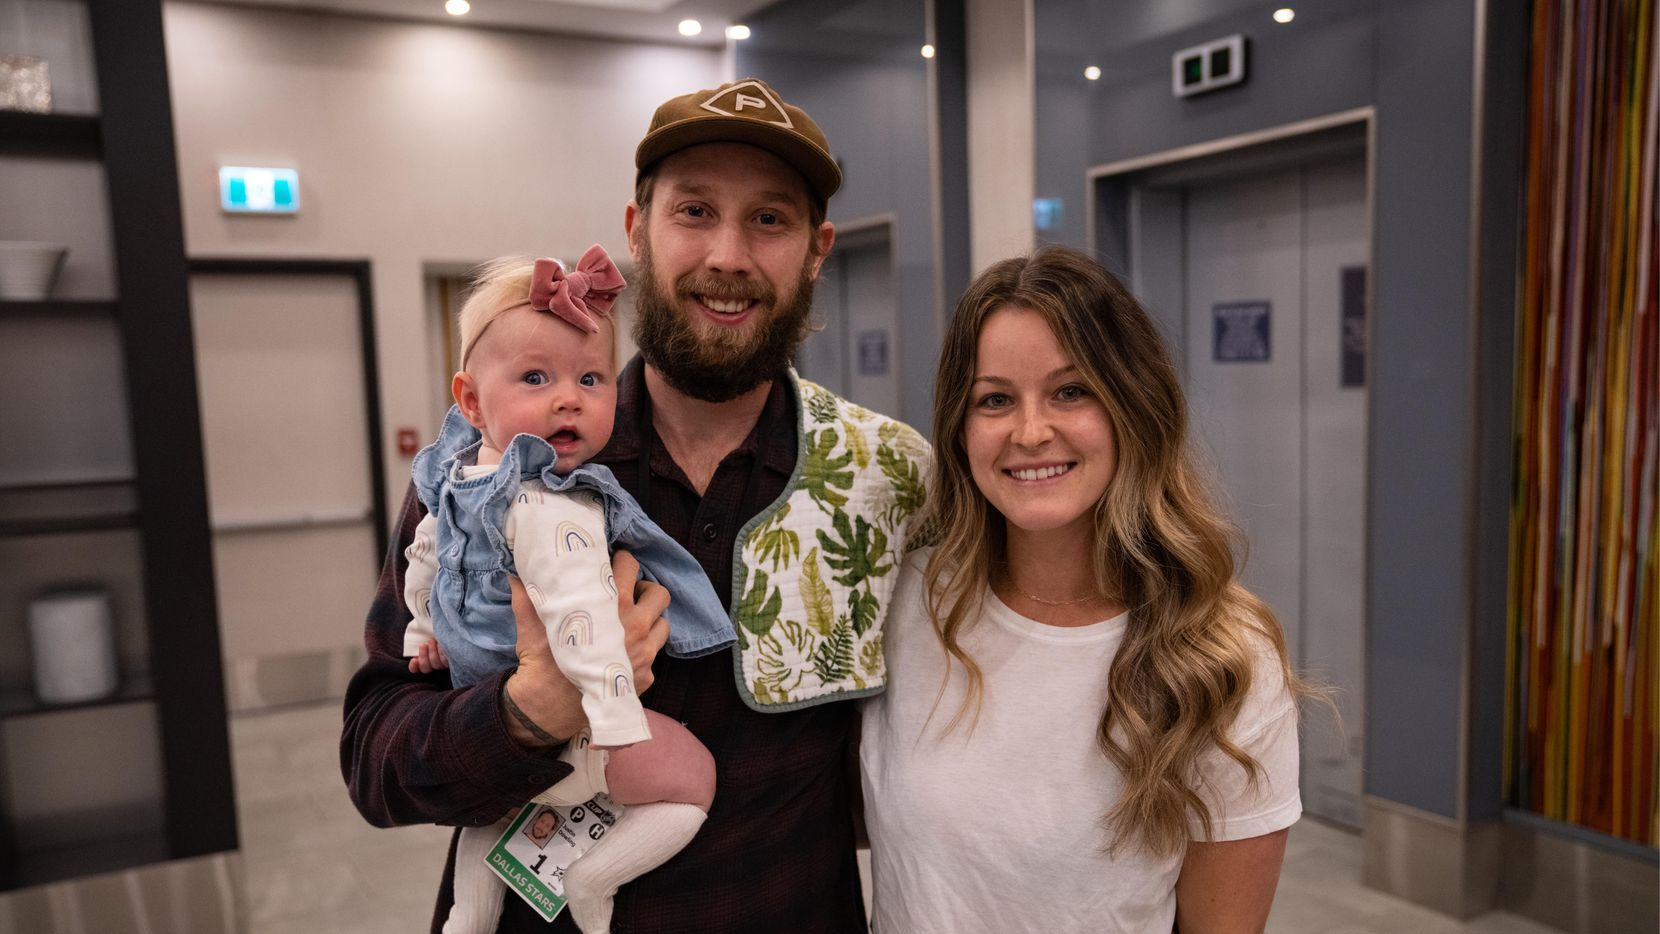 Stars forward Justin Dowling poses with his wife, Meg, and daughter, Perri, after the family reunited in the NHL's Edmonton bubble on Friday, Sept. 11, 2020.